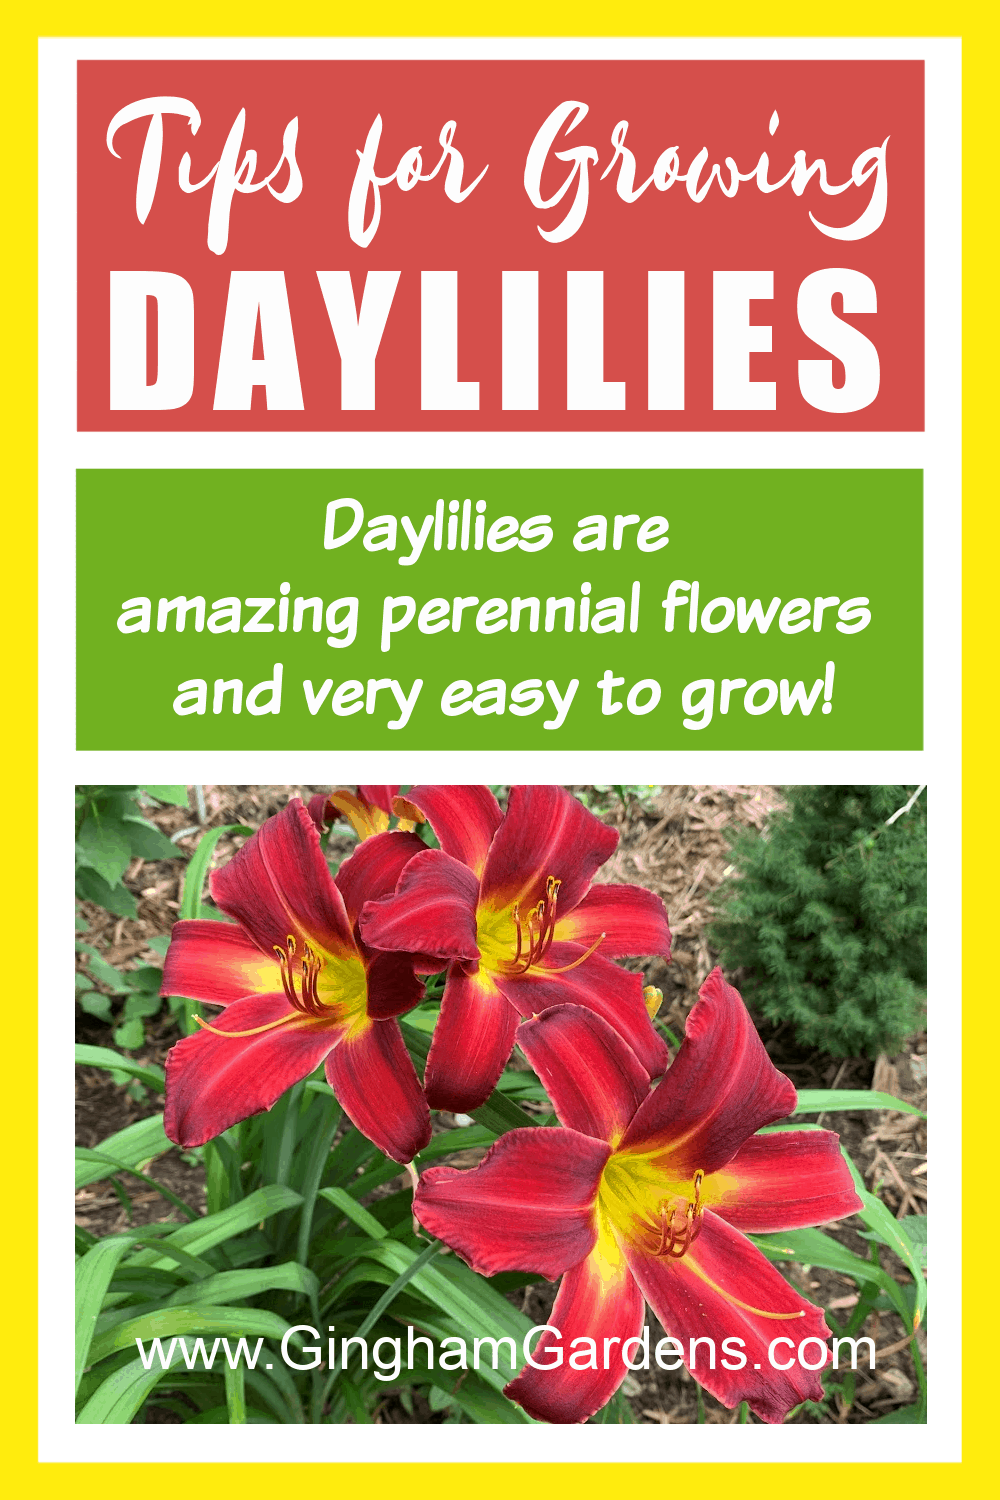 Image of Daylily flowers with text overlay - Tips for Growing Daylilies